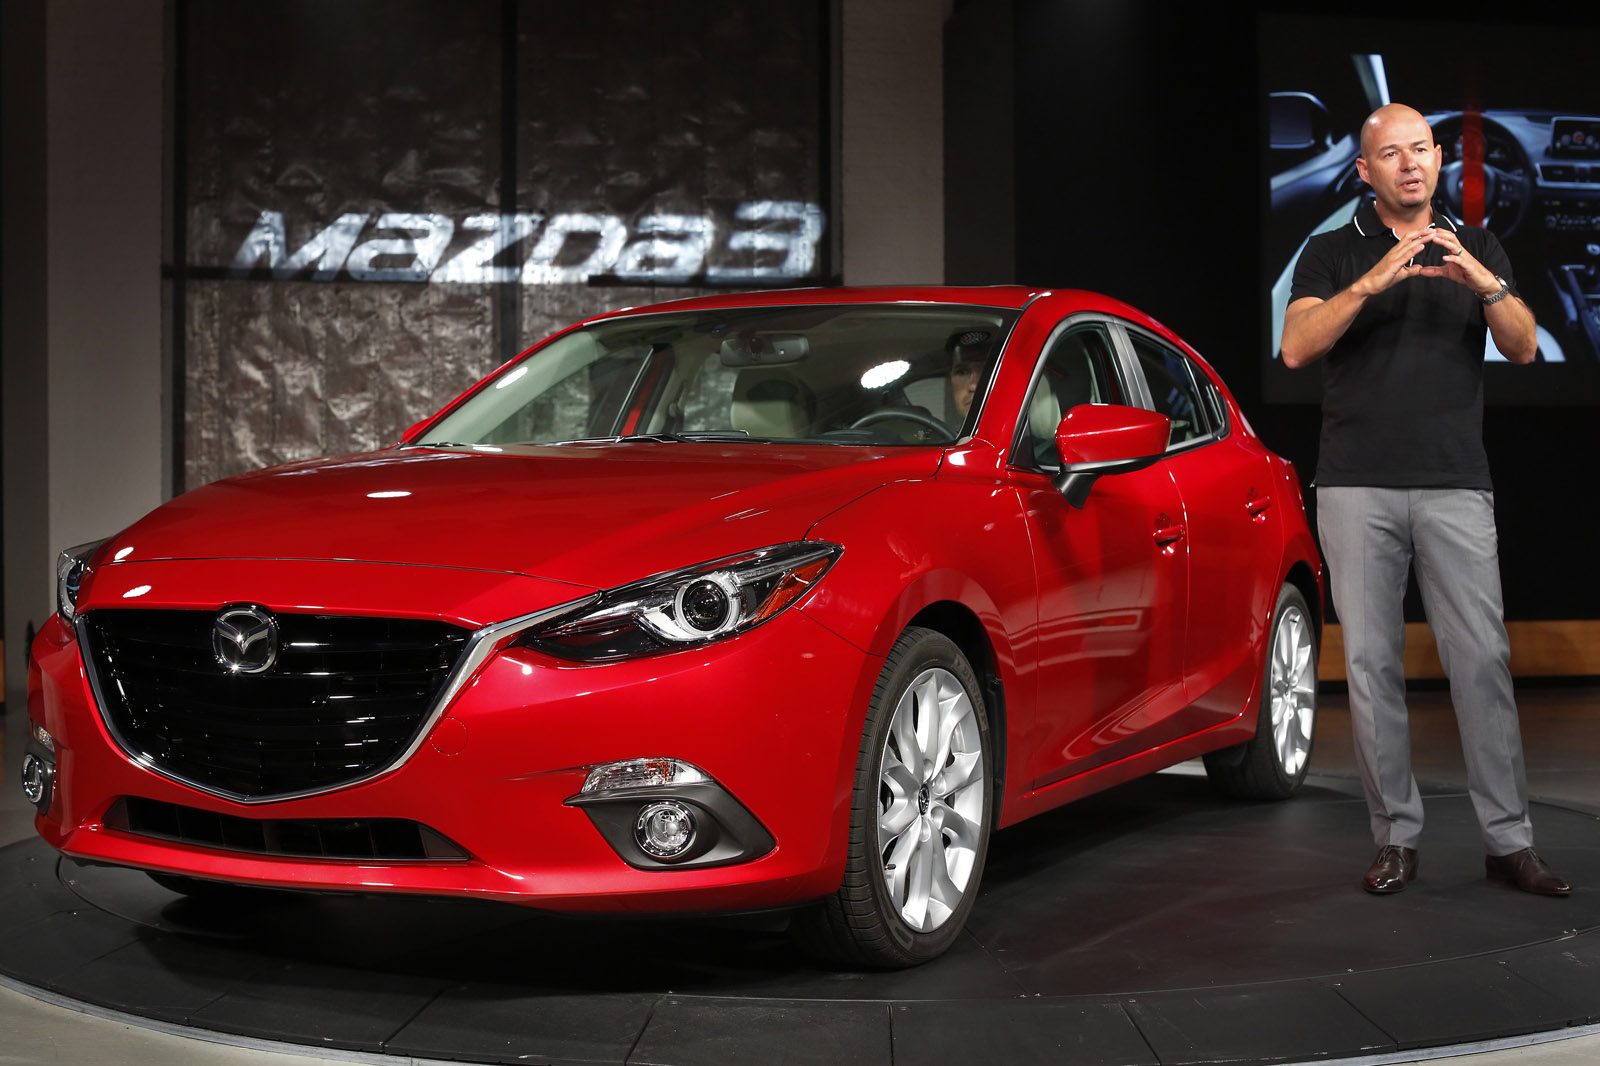 IMAGE DISTRIBUTED FOR MAZDA - Derek Jenkins, Director of Design for Mazda North America, introduces the new Mazda 3 at the Mazda Unveil & Press Event on Wednesday, June 26, 2013 in New York. (John Minchillo/AP Images for Mazda)